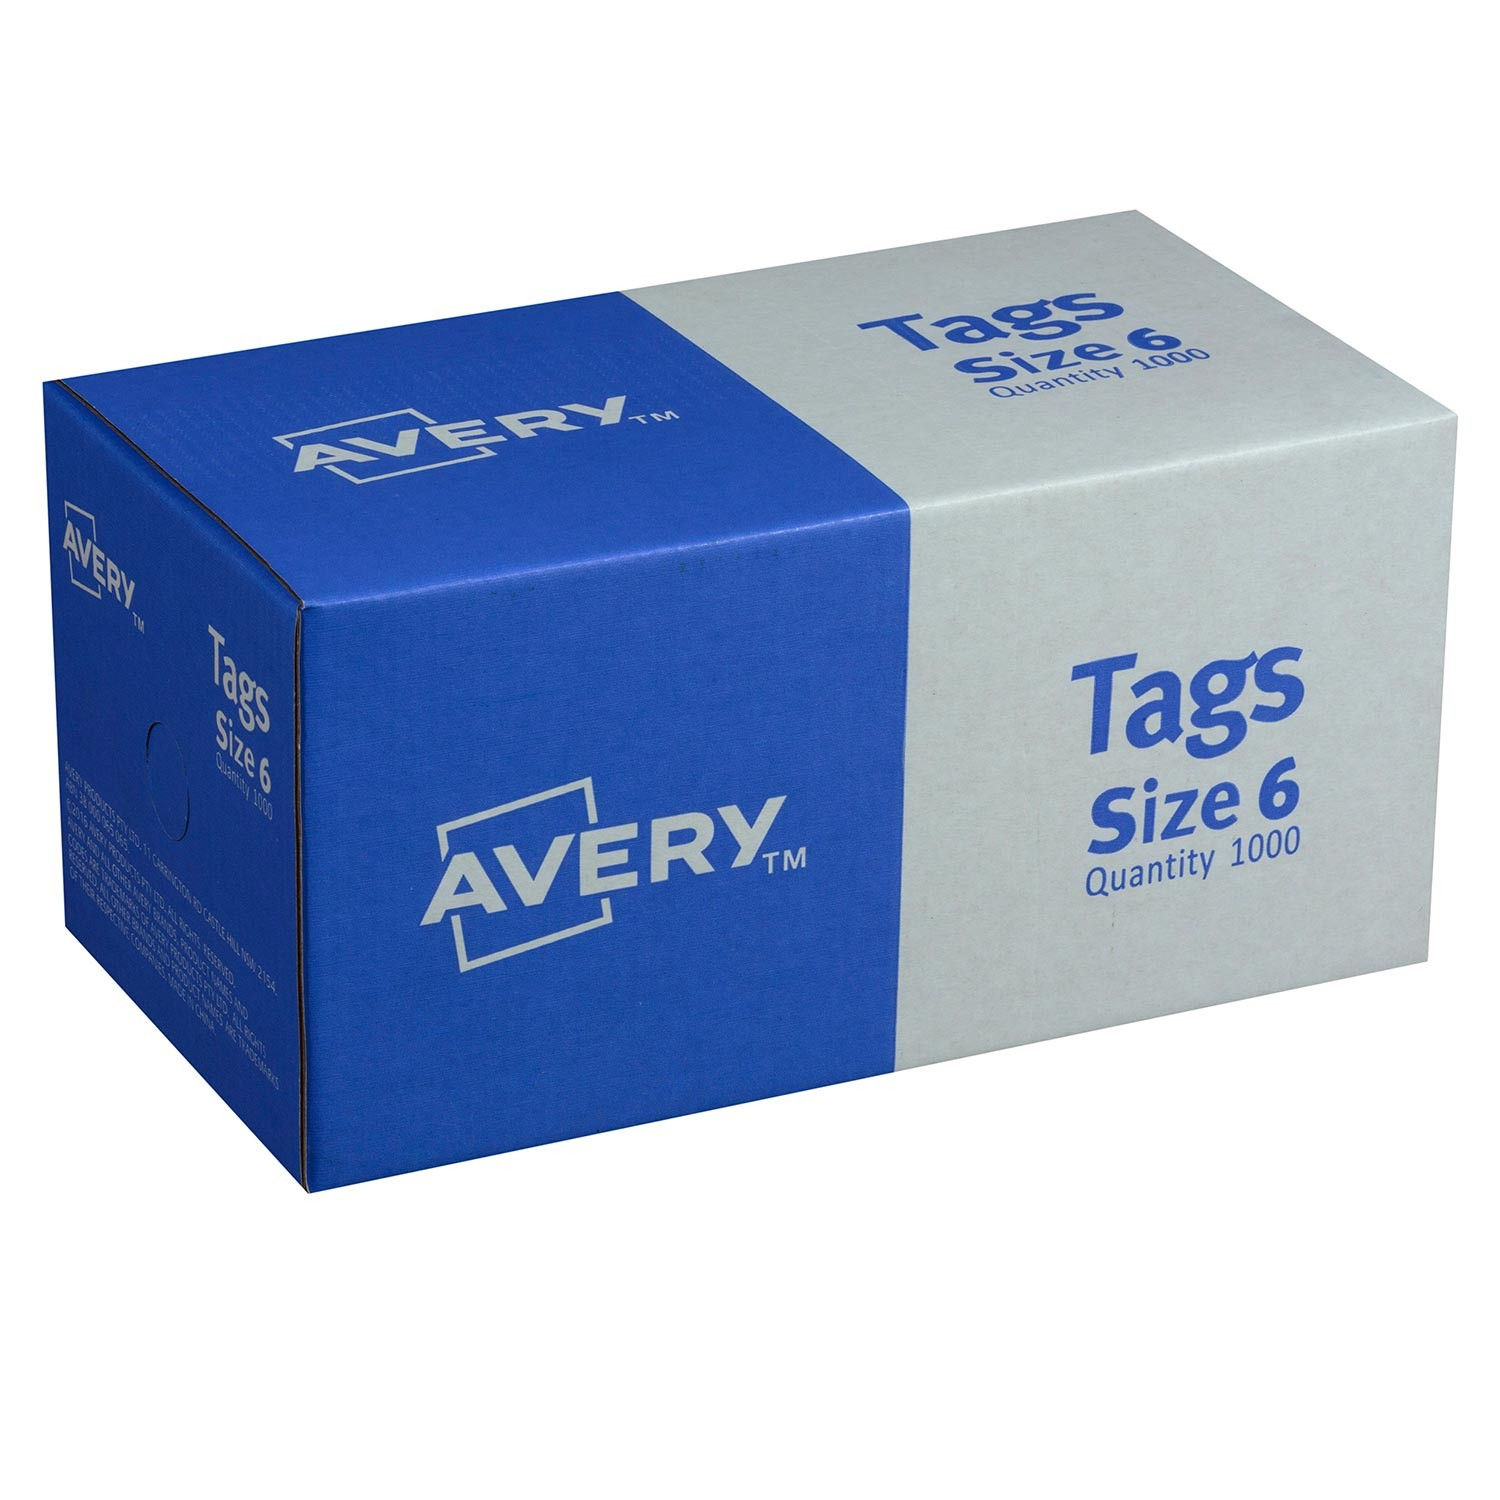 Red Shipping Tags Size 6 16110 Avery Australia